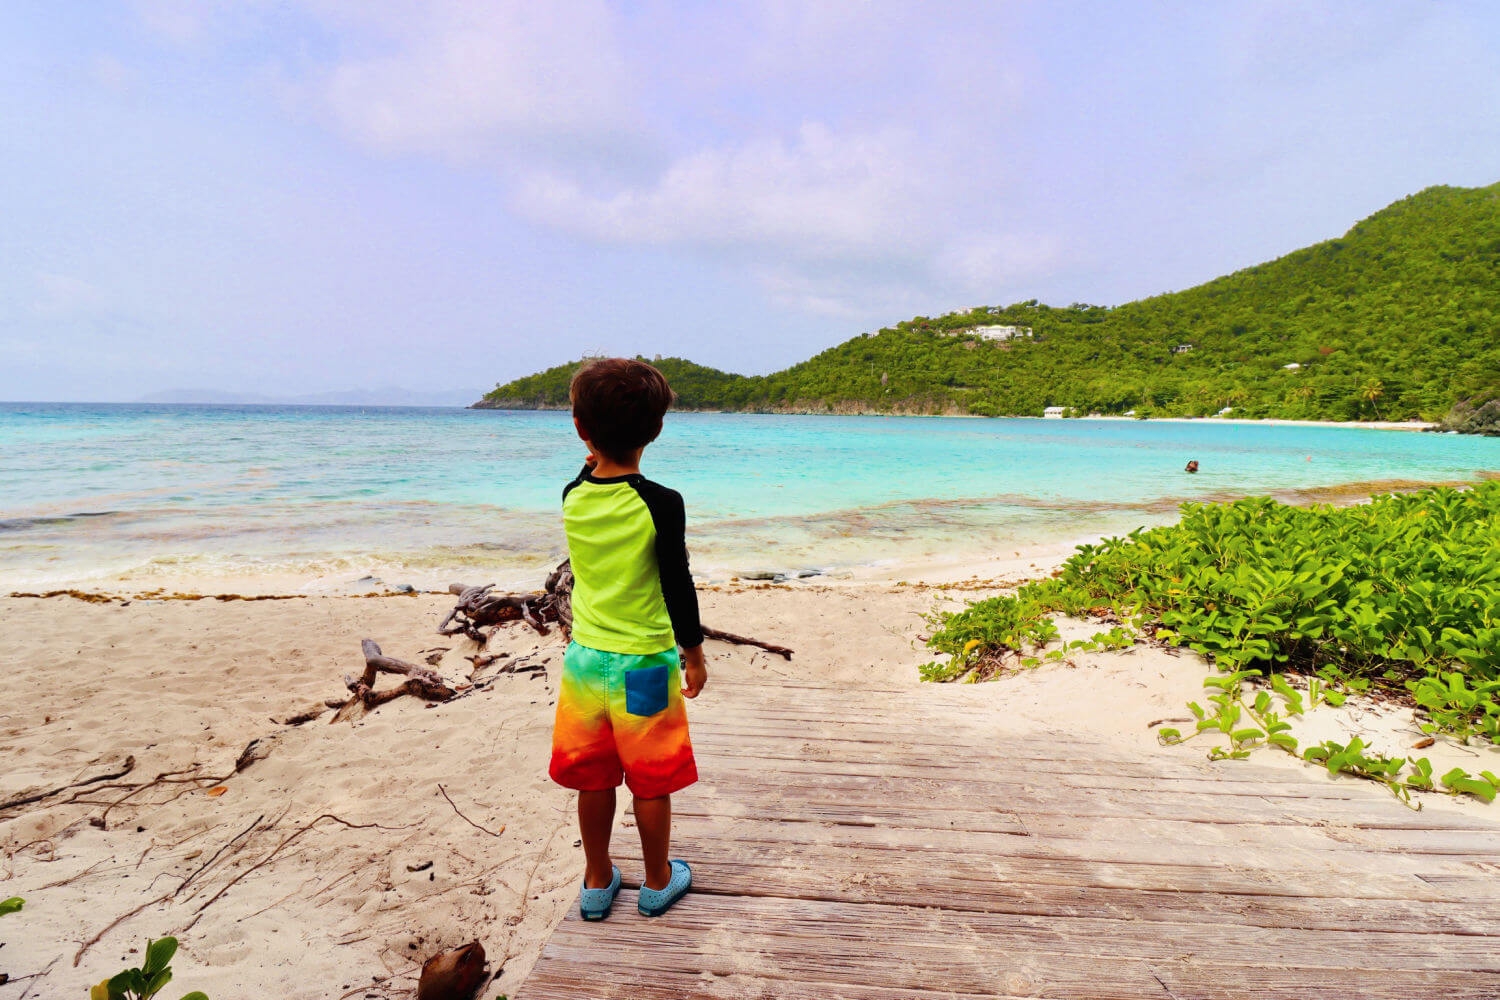 Young kid on St. John Island looking out at beautiful blue beach